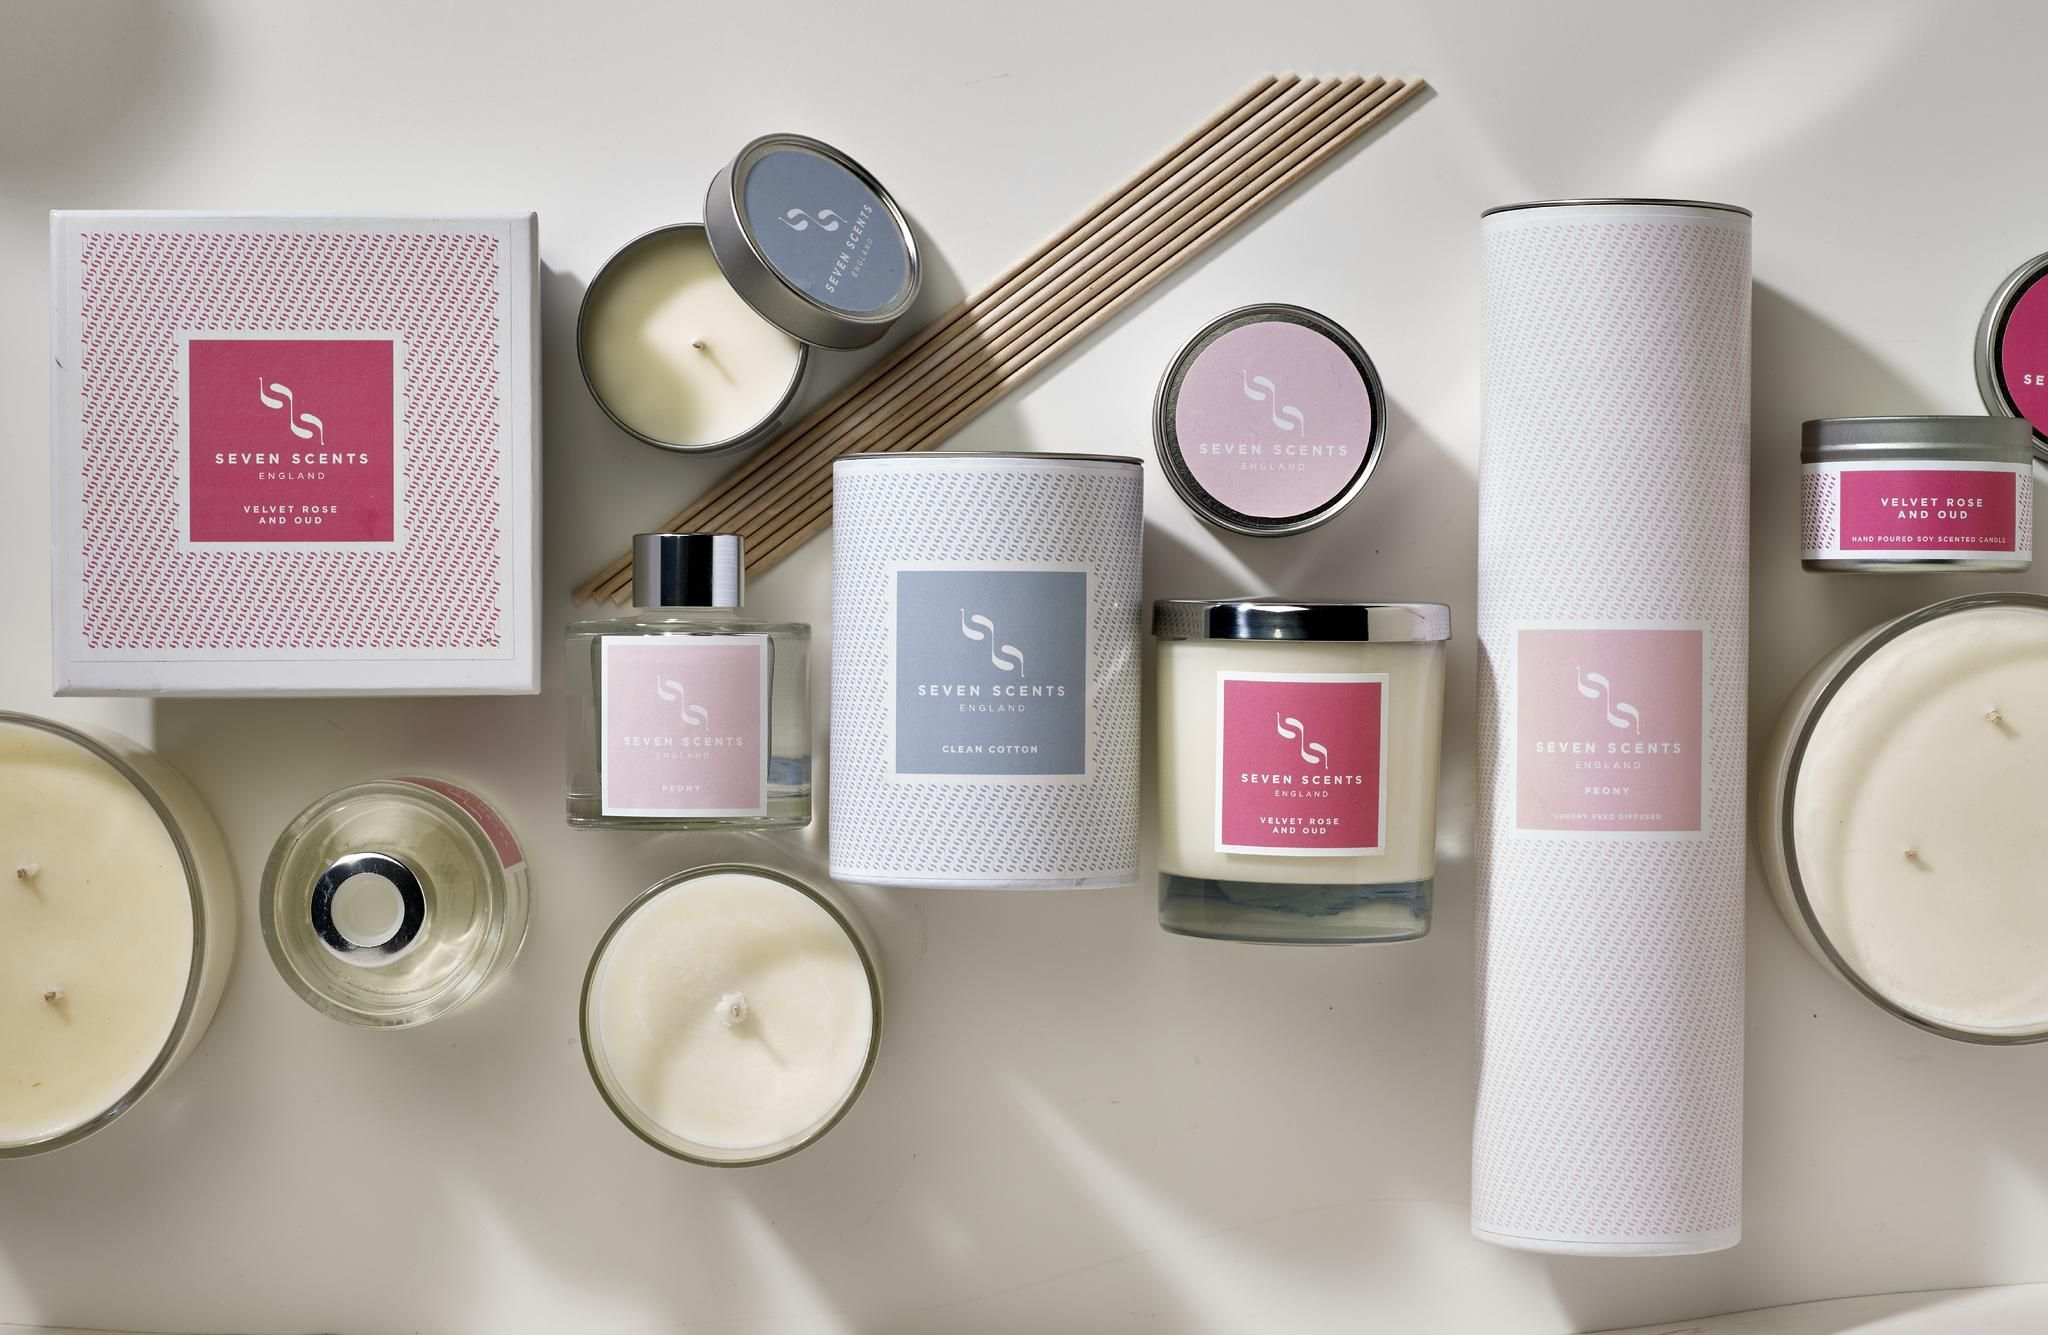 Seven Scents Home Limited